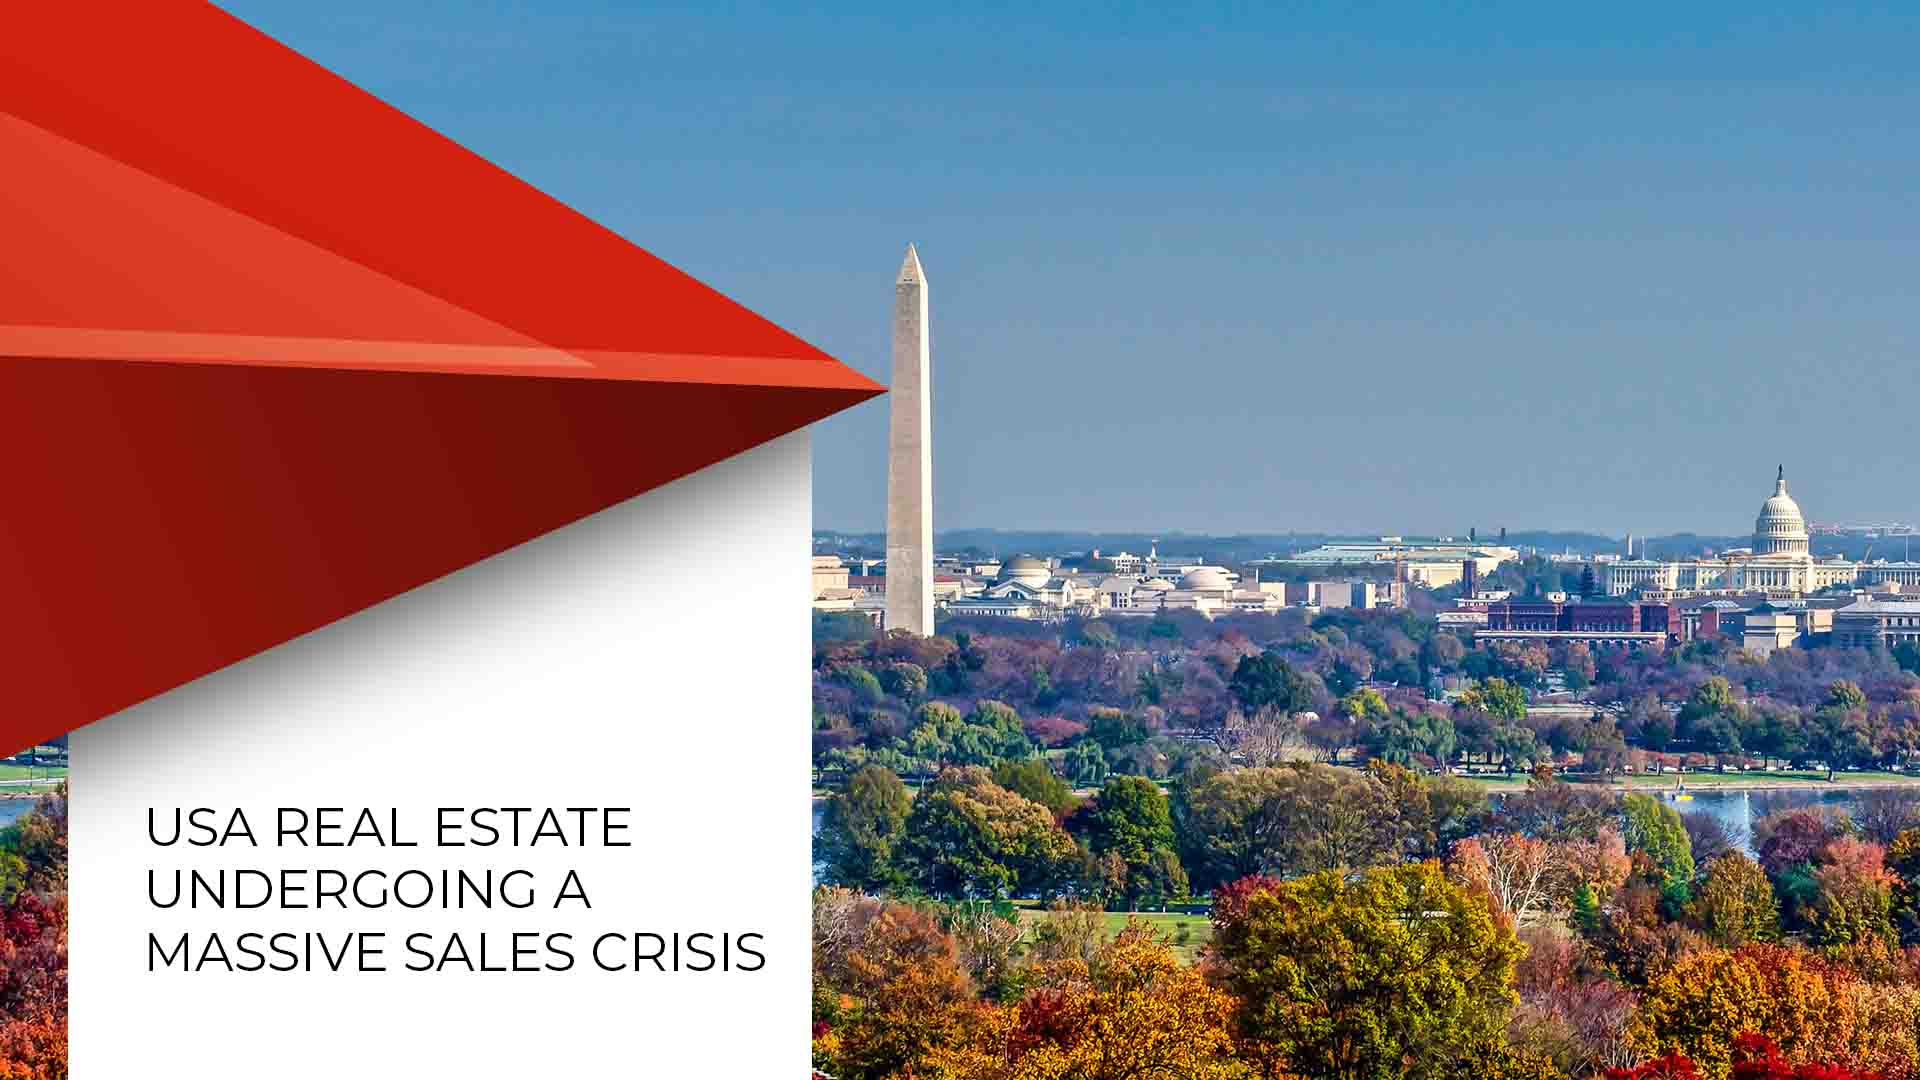 USA Residential Real Estate Sales Plunge To An All Time Low